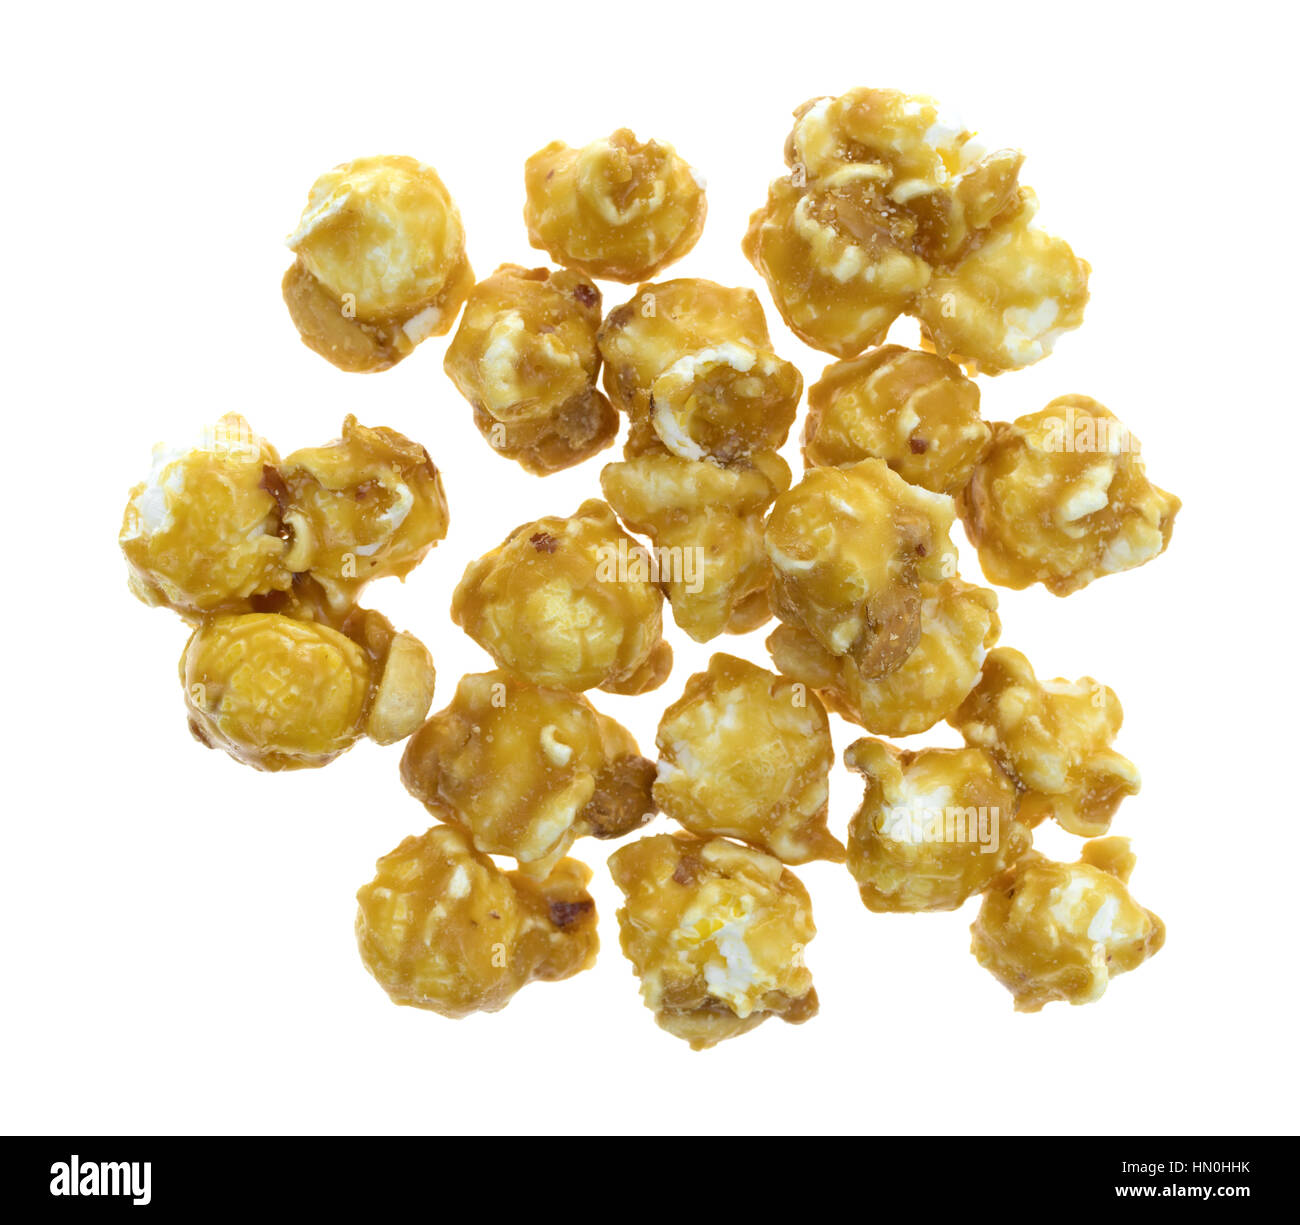 Top view of a portion of toffee caramel popcorn with nuts isolated on a white background. - Stock Image